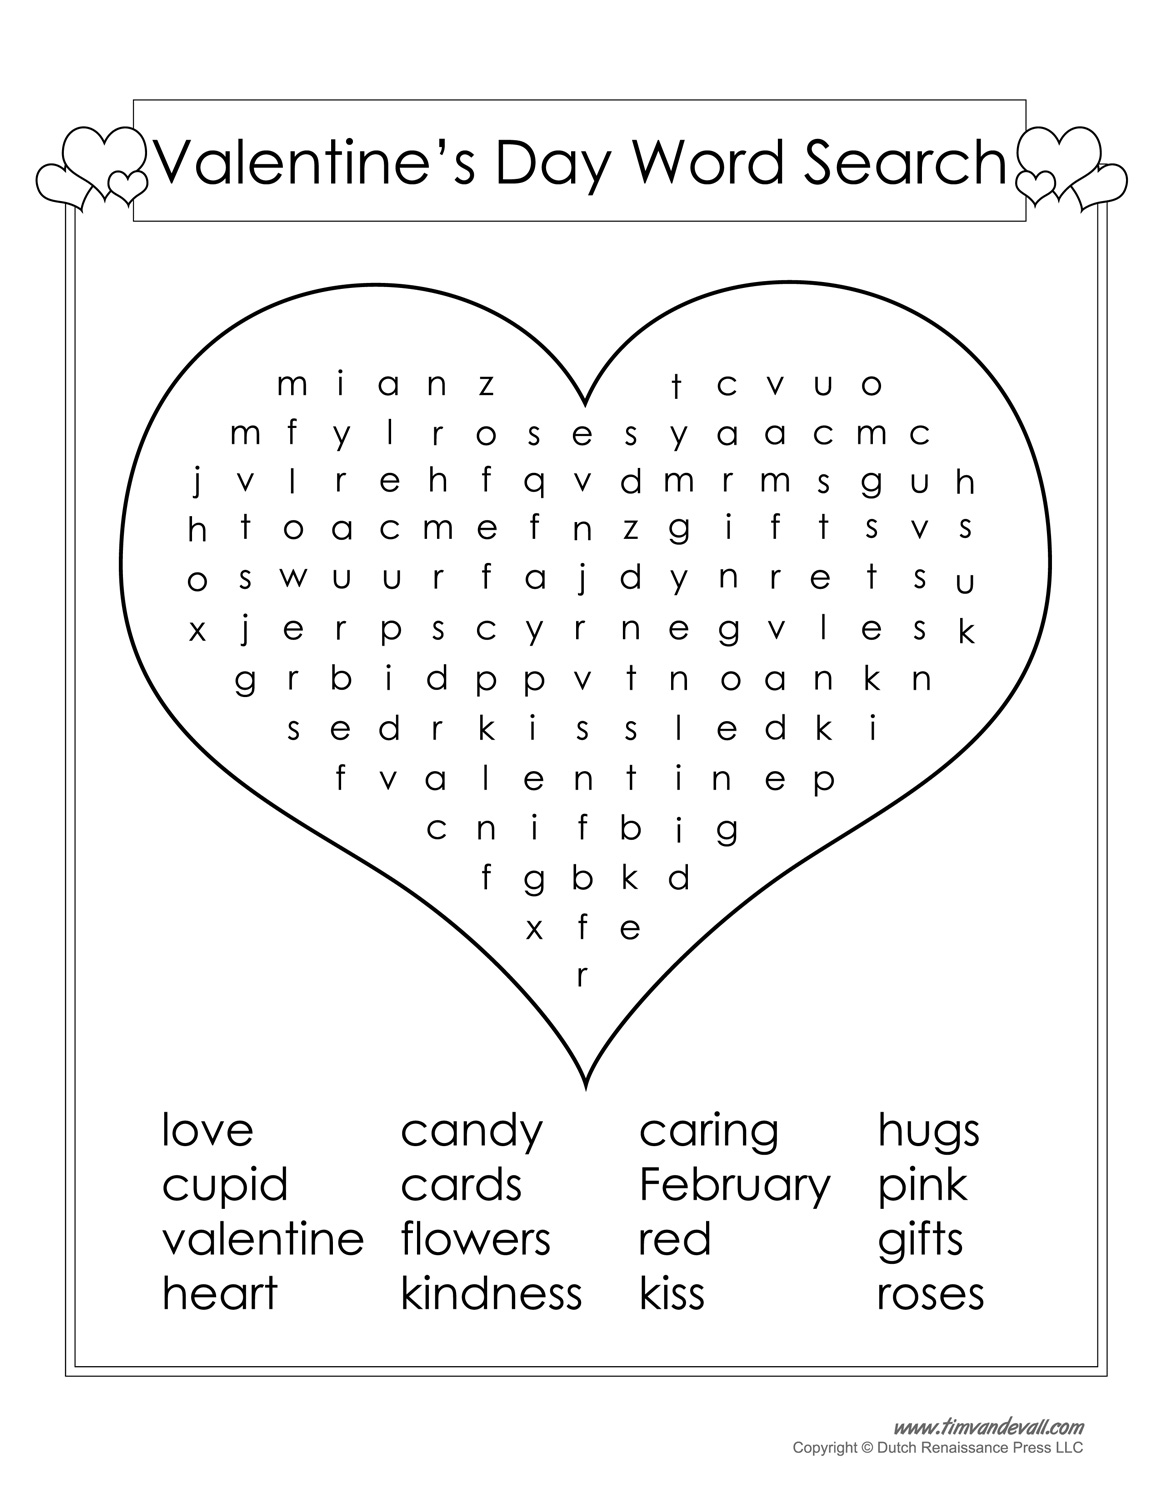 photo relating to Valentine Day Word Search Printable known as 12 Valentines Working day Term Seem